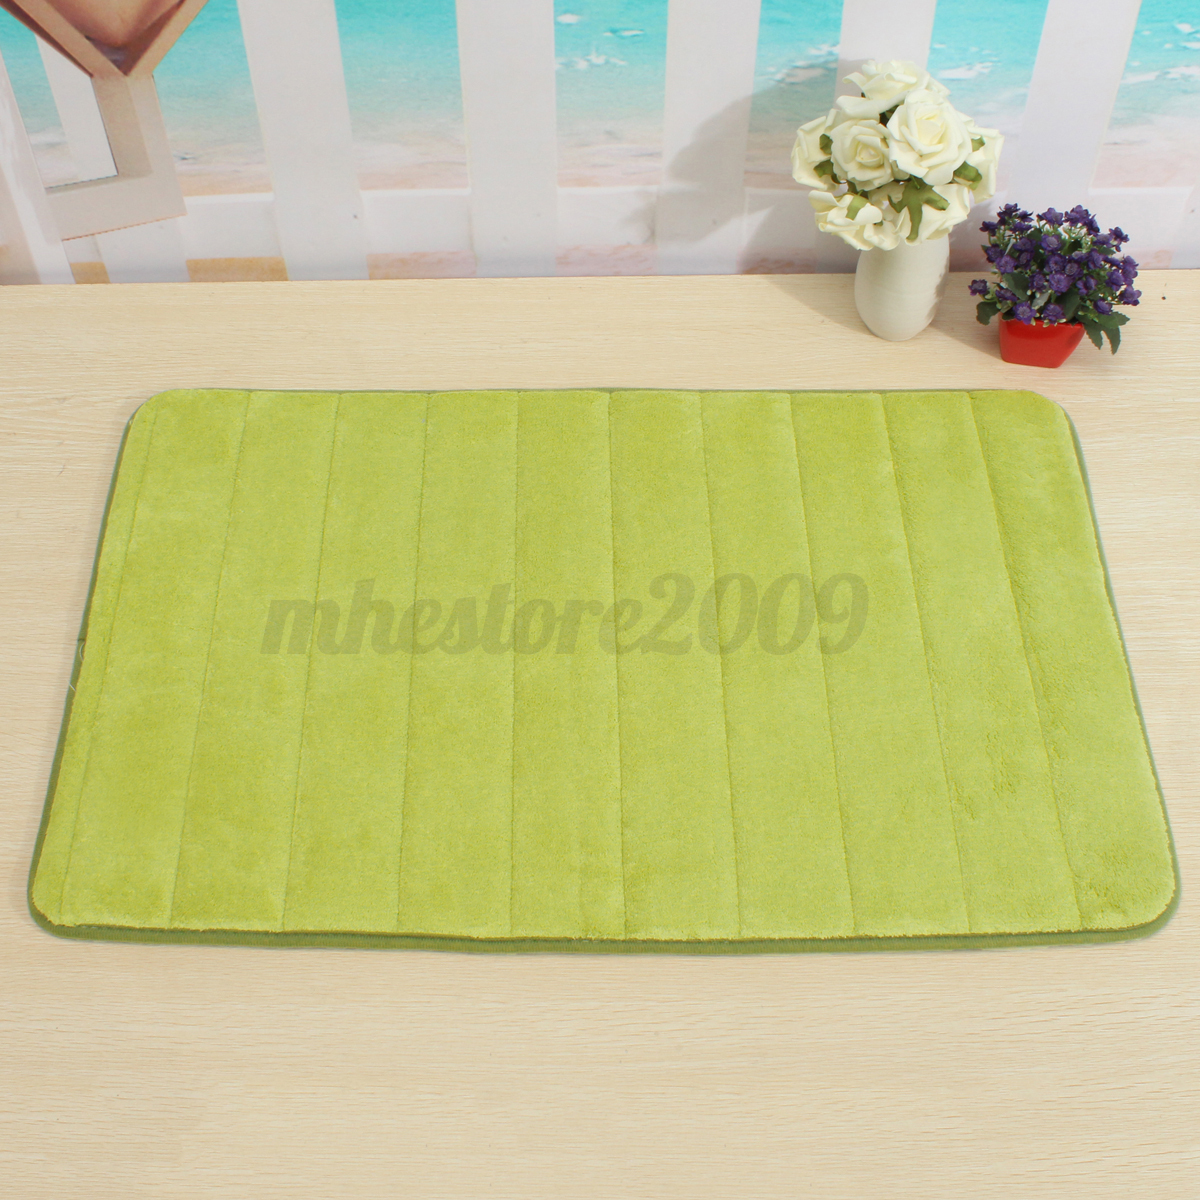 Carpet In A Bathroom: Memory Foam Non Slip Bathroom Bath Mat Bedroom Shower